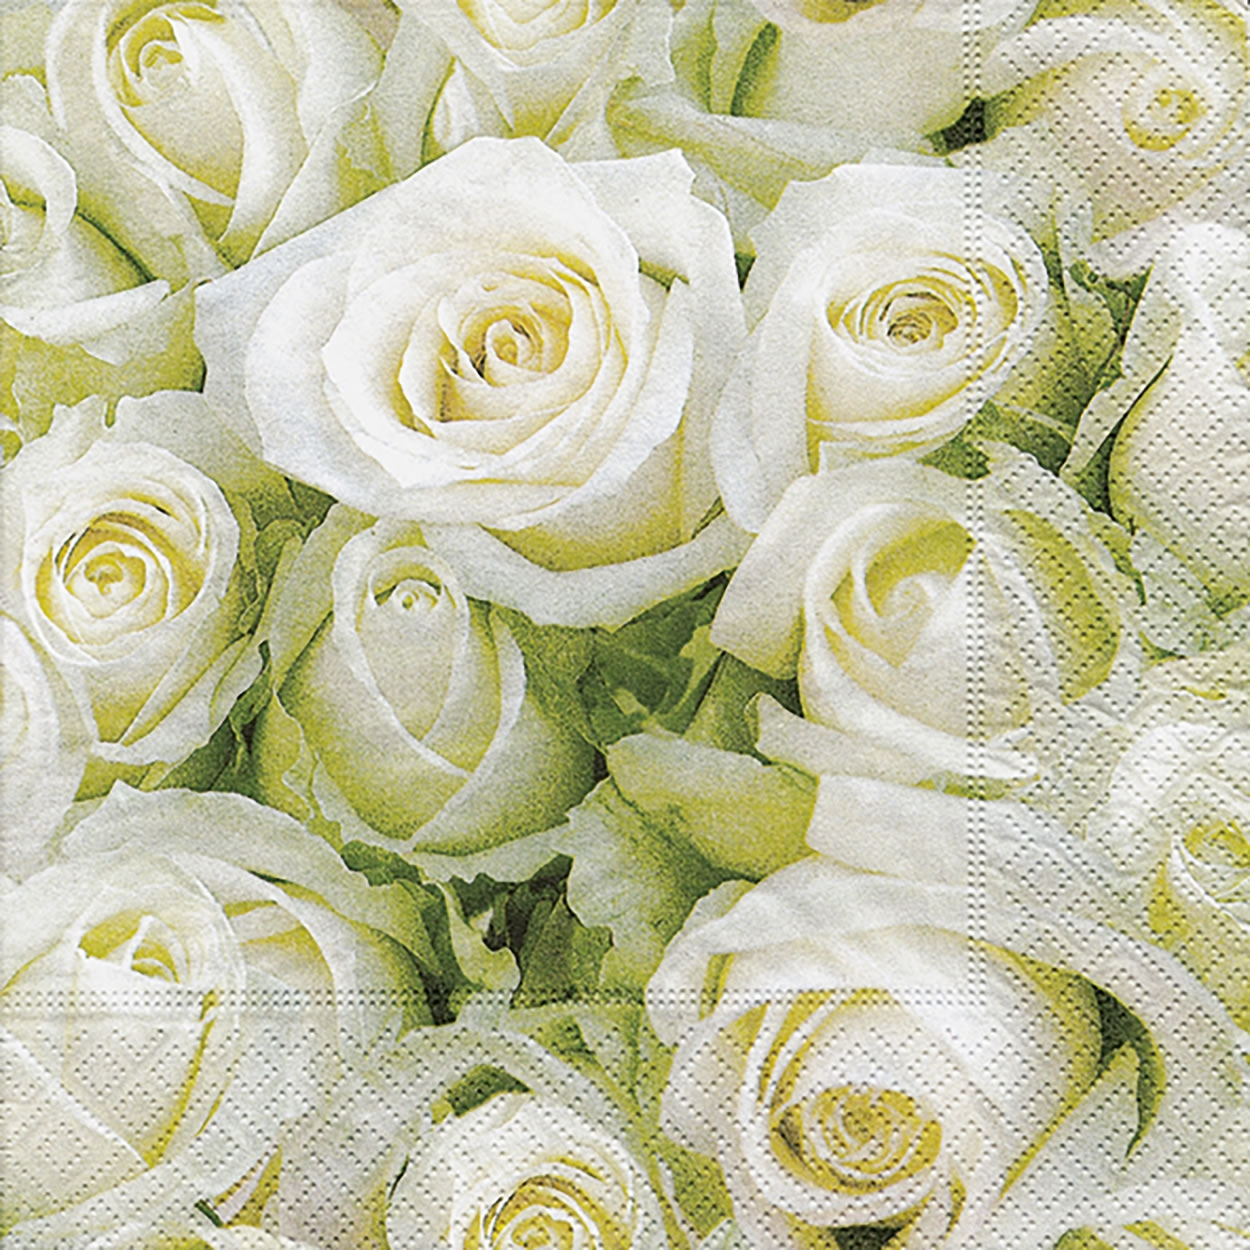 20 Servietten - 33 x 33 cm White roses,  Everyday,  lunchservietten